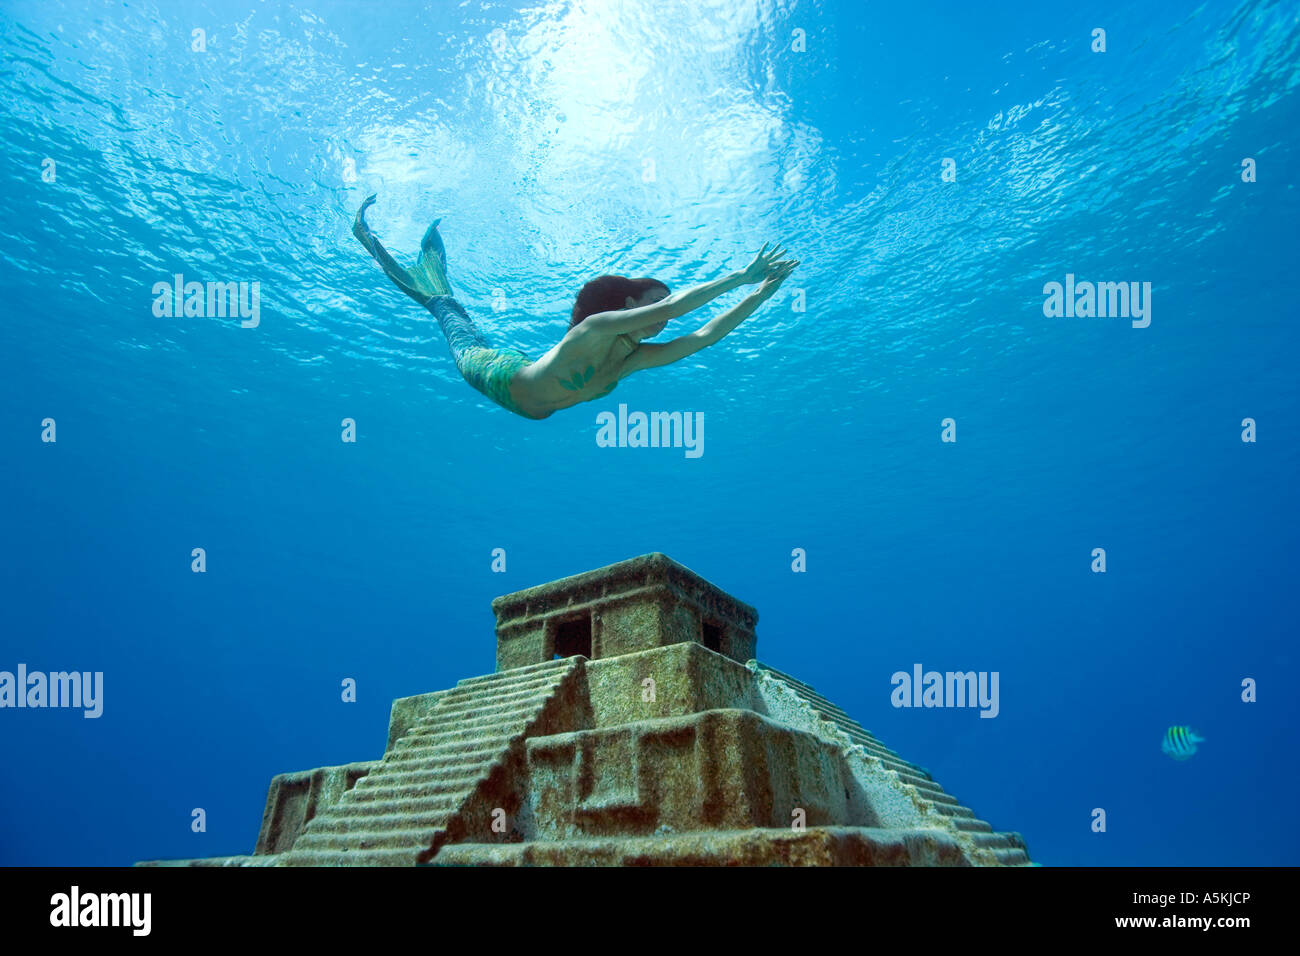 Mermaid freediving over Mayan temple west side Cozumel Mexico - Stock Image